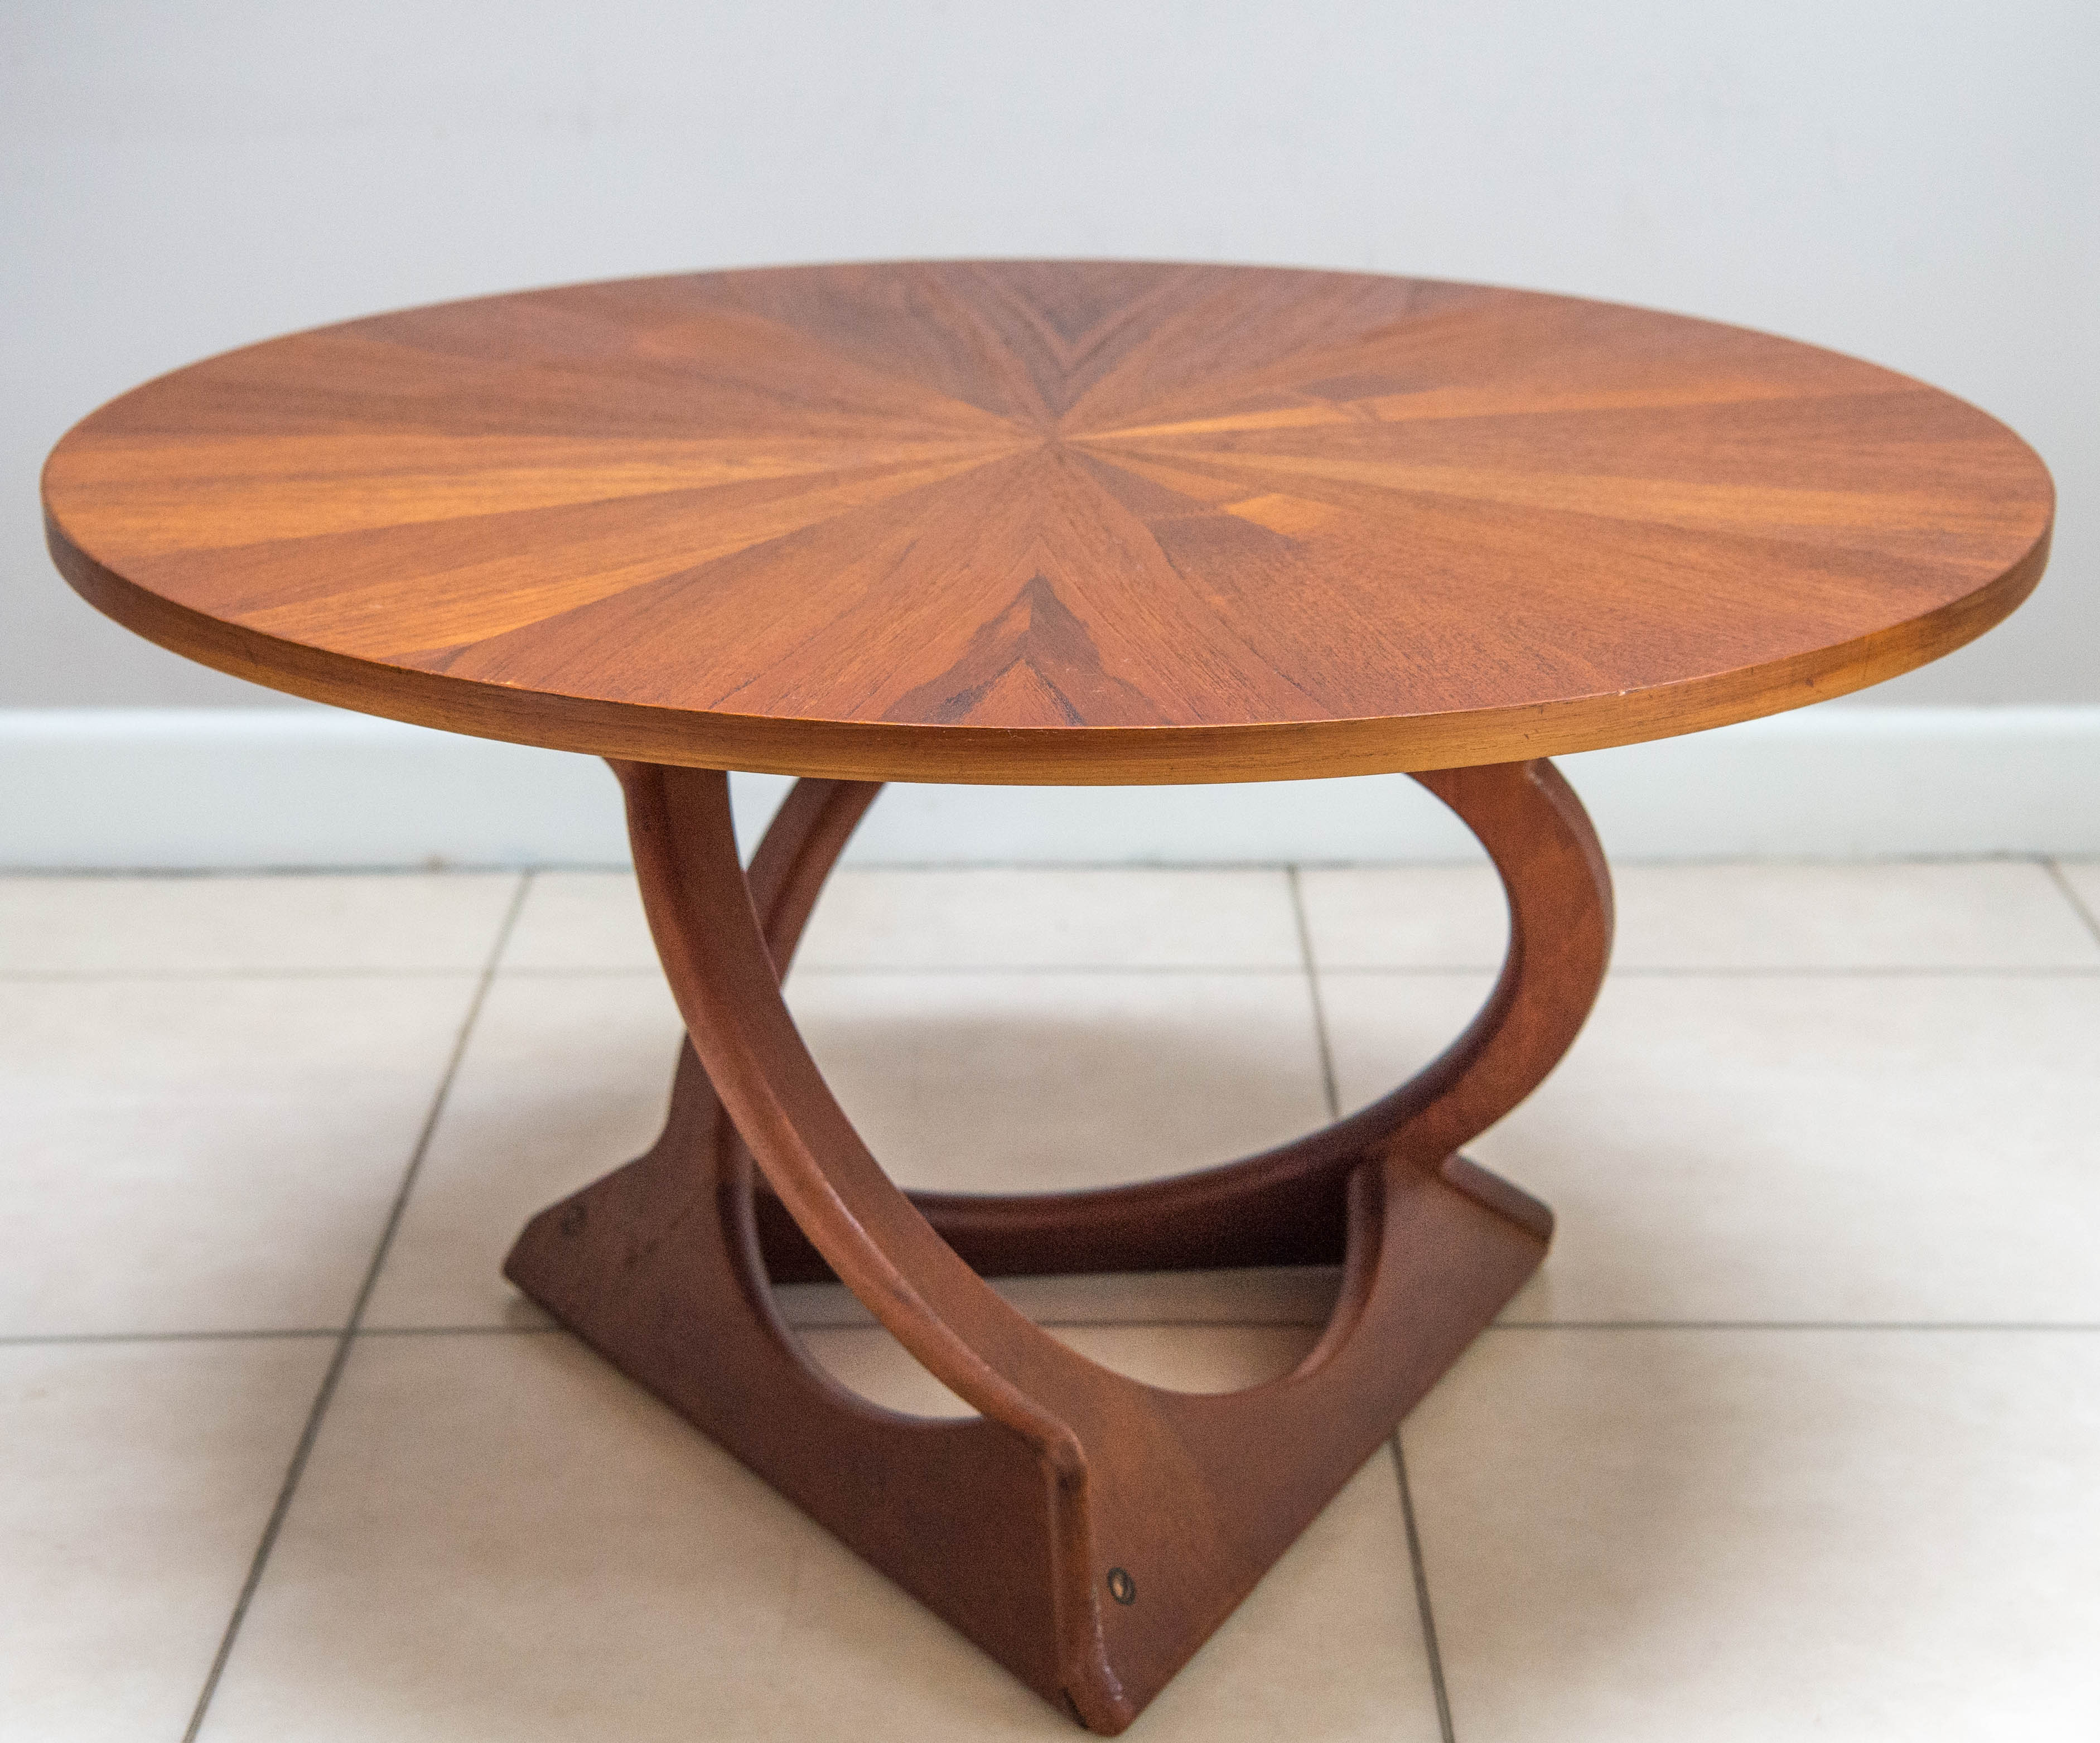 Vintage Sunburst Danish Teak Coffee Table By Soren Georg Jensen For Kubus